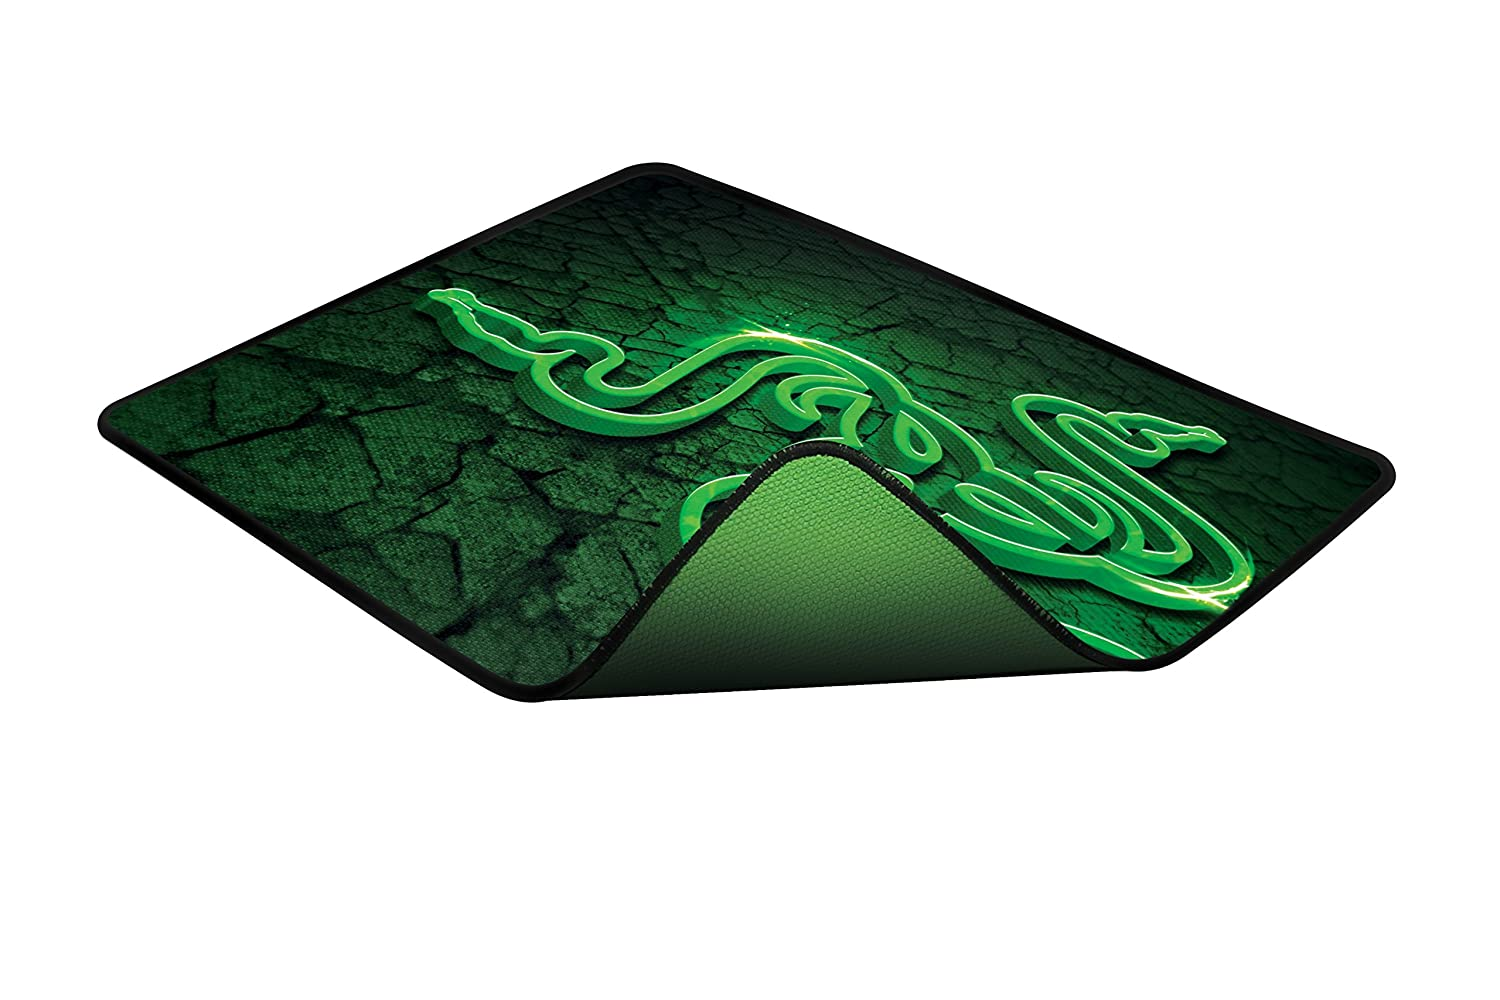 Game on the Go Soft Gaming Mouse Mat Razer Goliathus Mobile